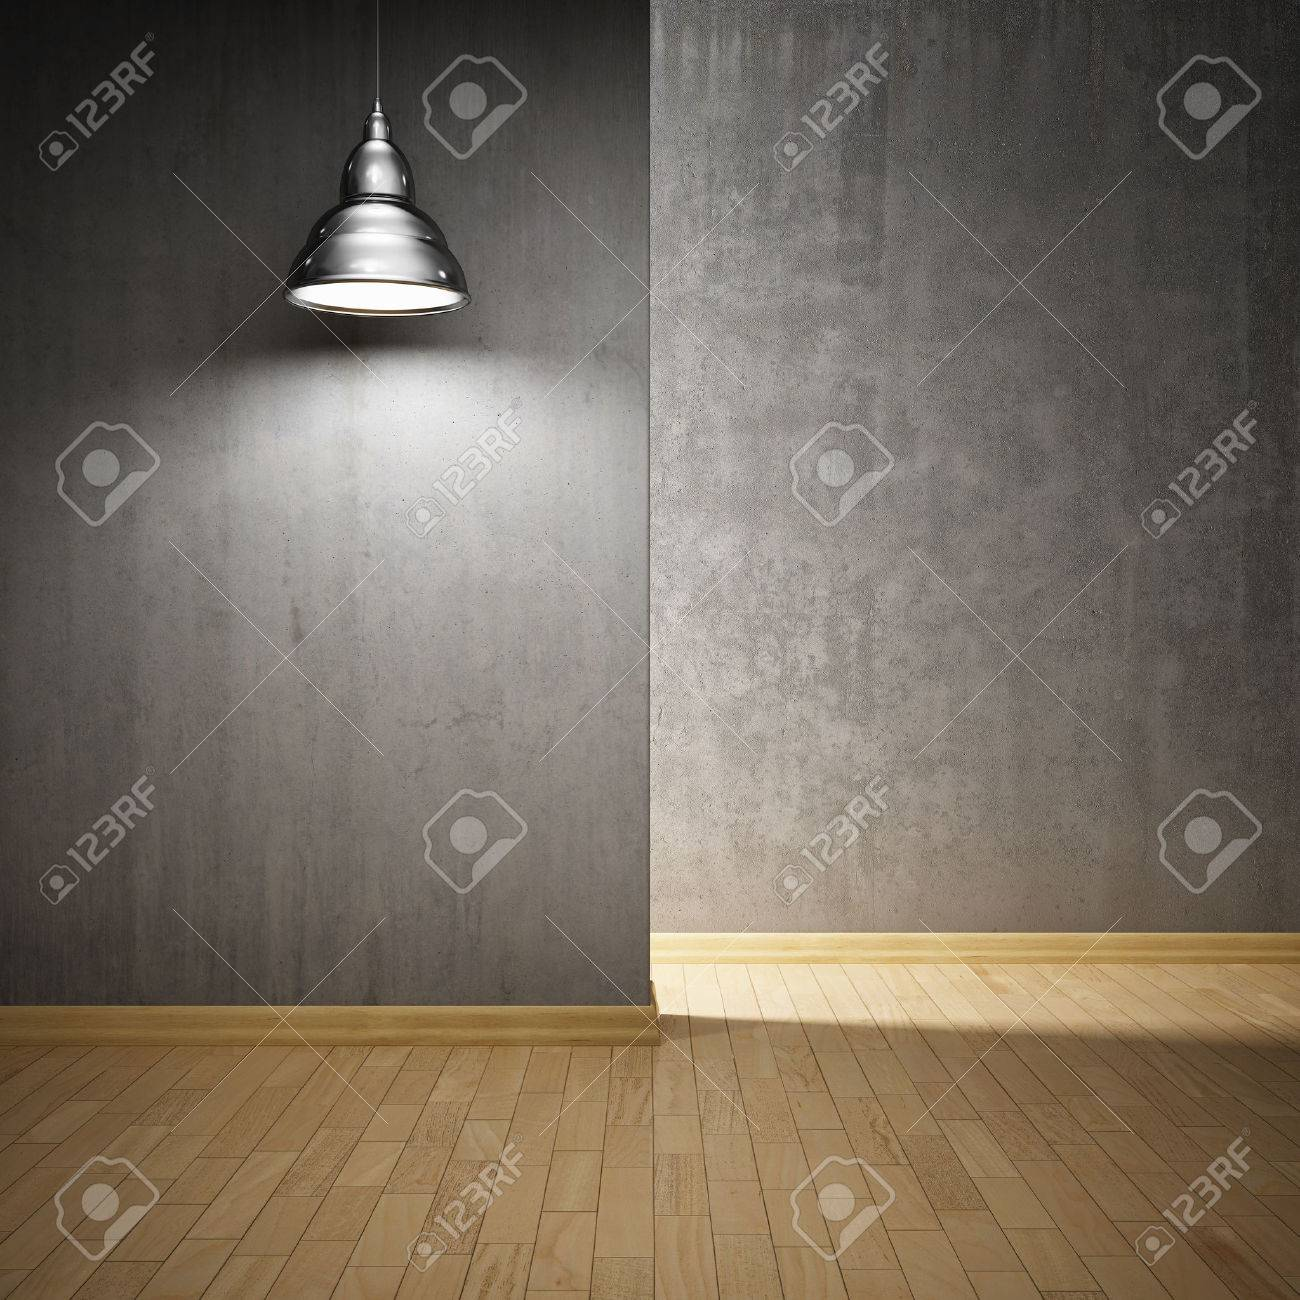 Interior hall with concrete walls and lamp Stock Photo - 23182060